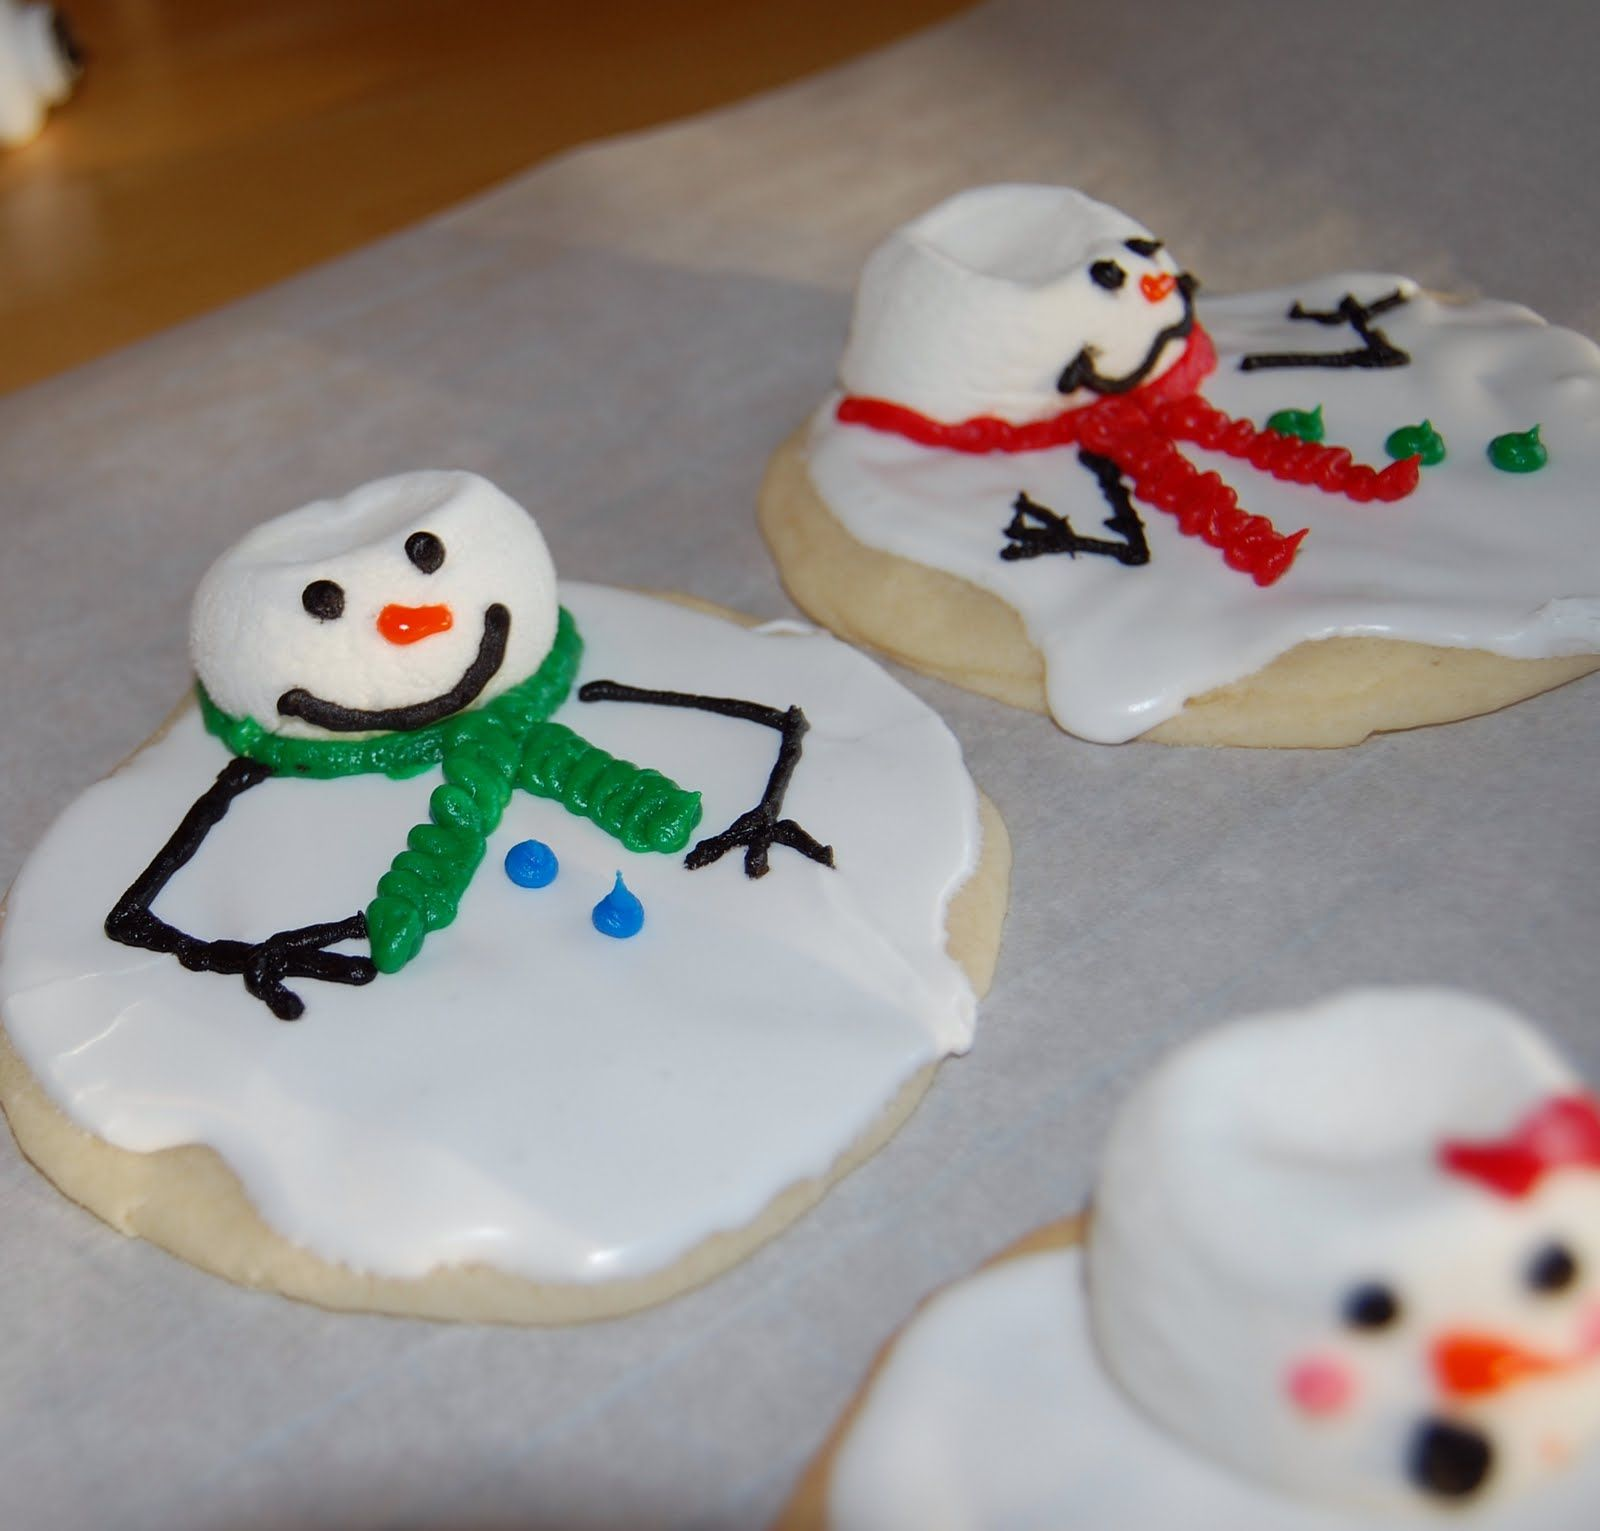 Pin by heather wood on christmas fun crafts pinterest for Fun and cute crafts